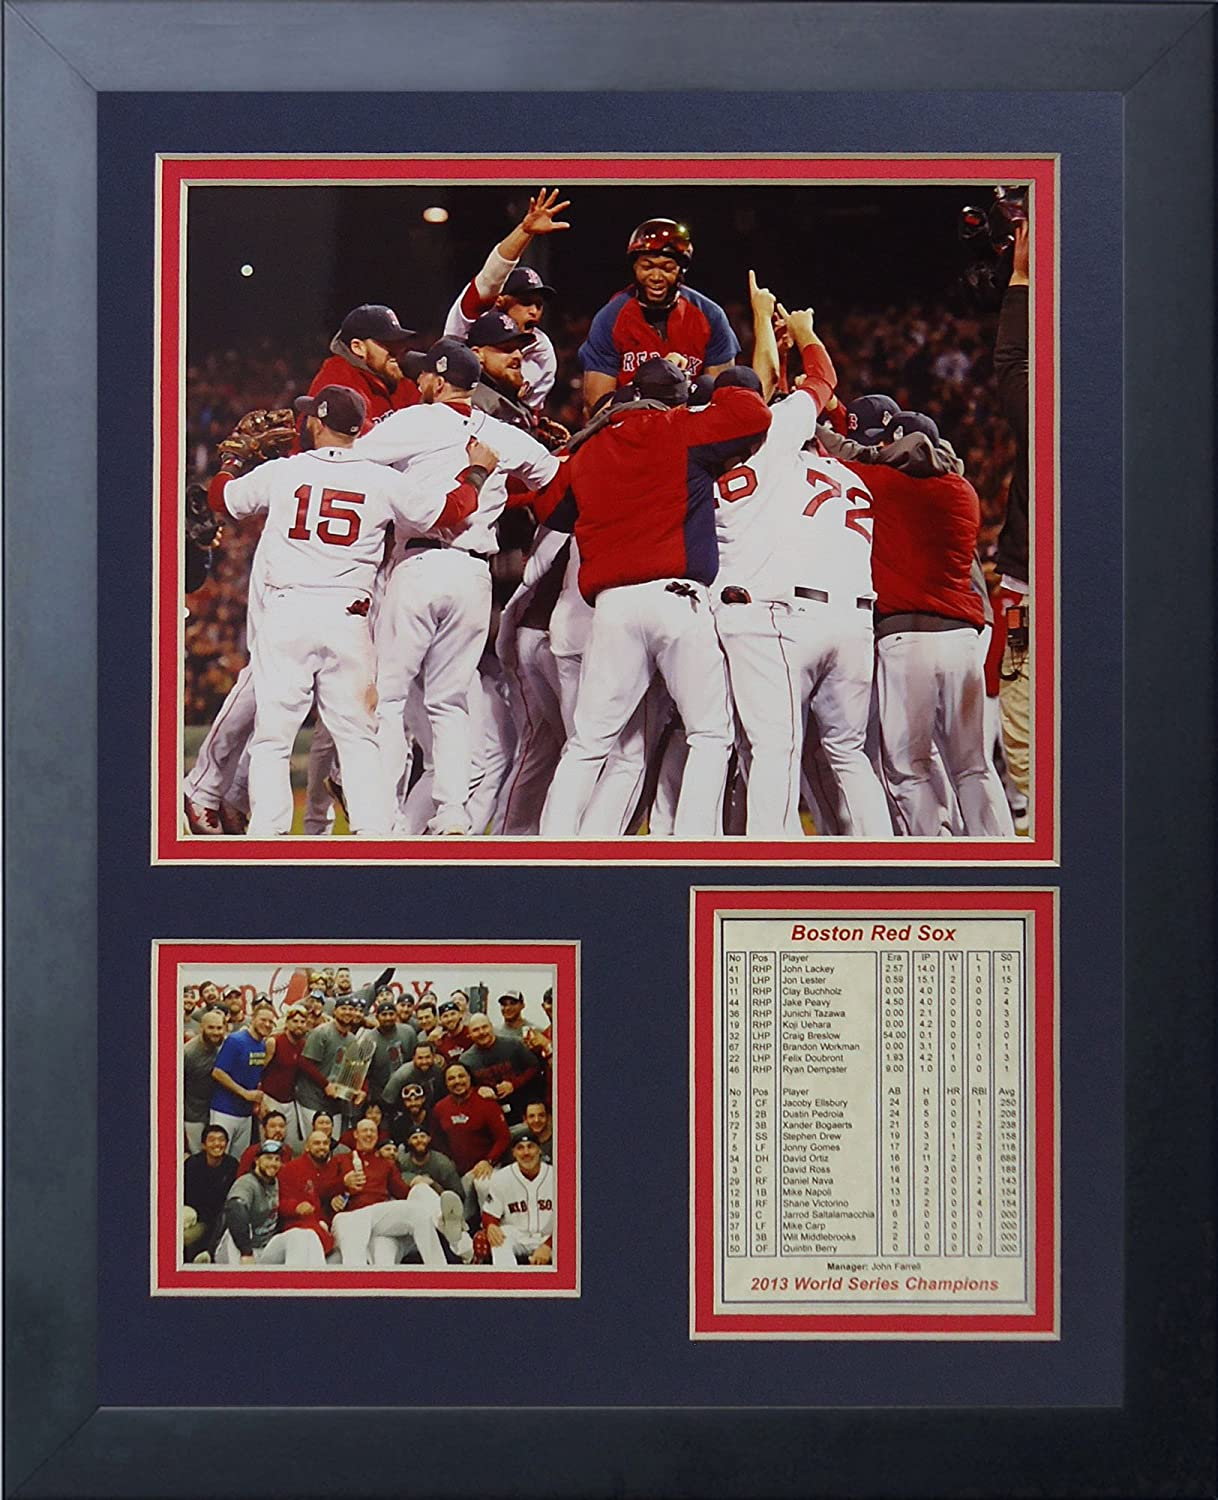 11 x 14-Inch Legends Never Die 2013 Boston Red Sox World Series Champions Huddle Framed Photo Collage